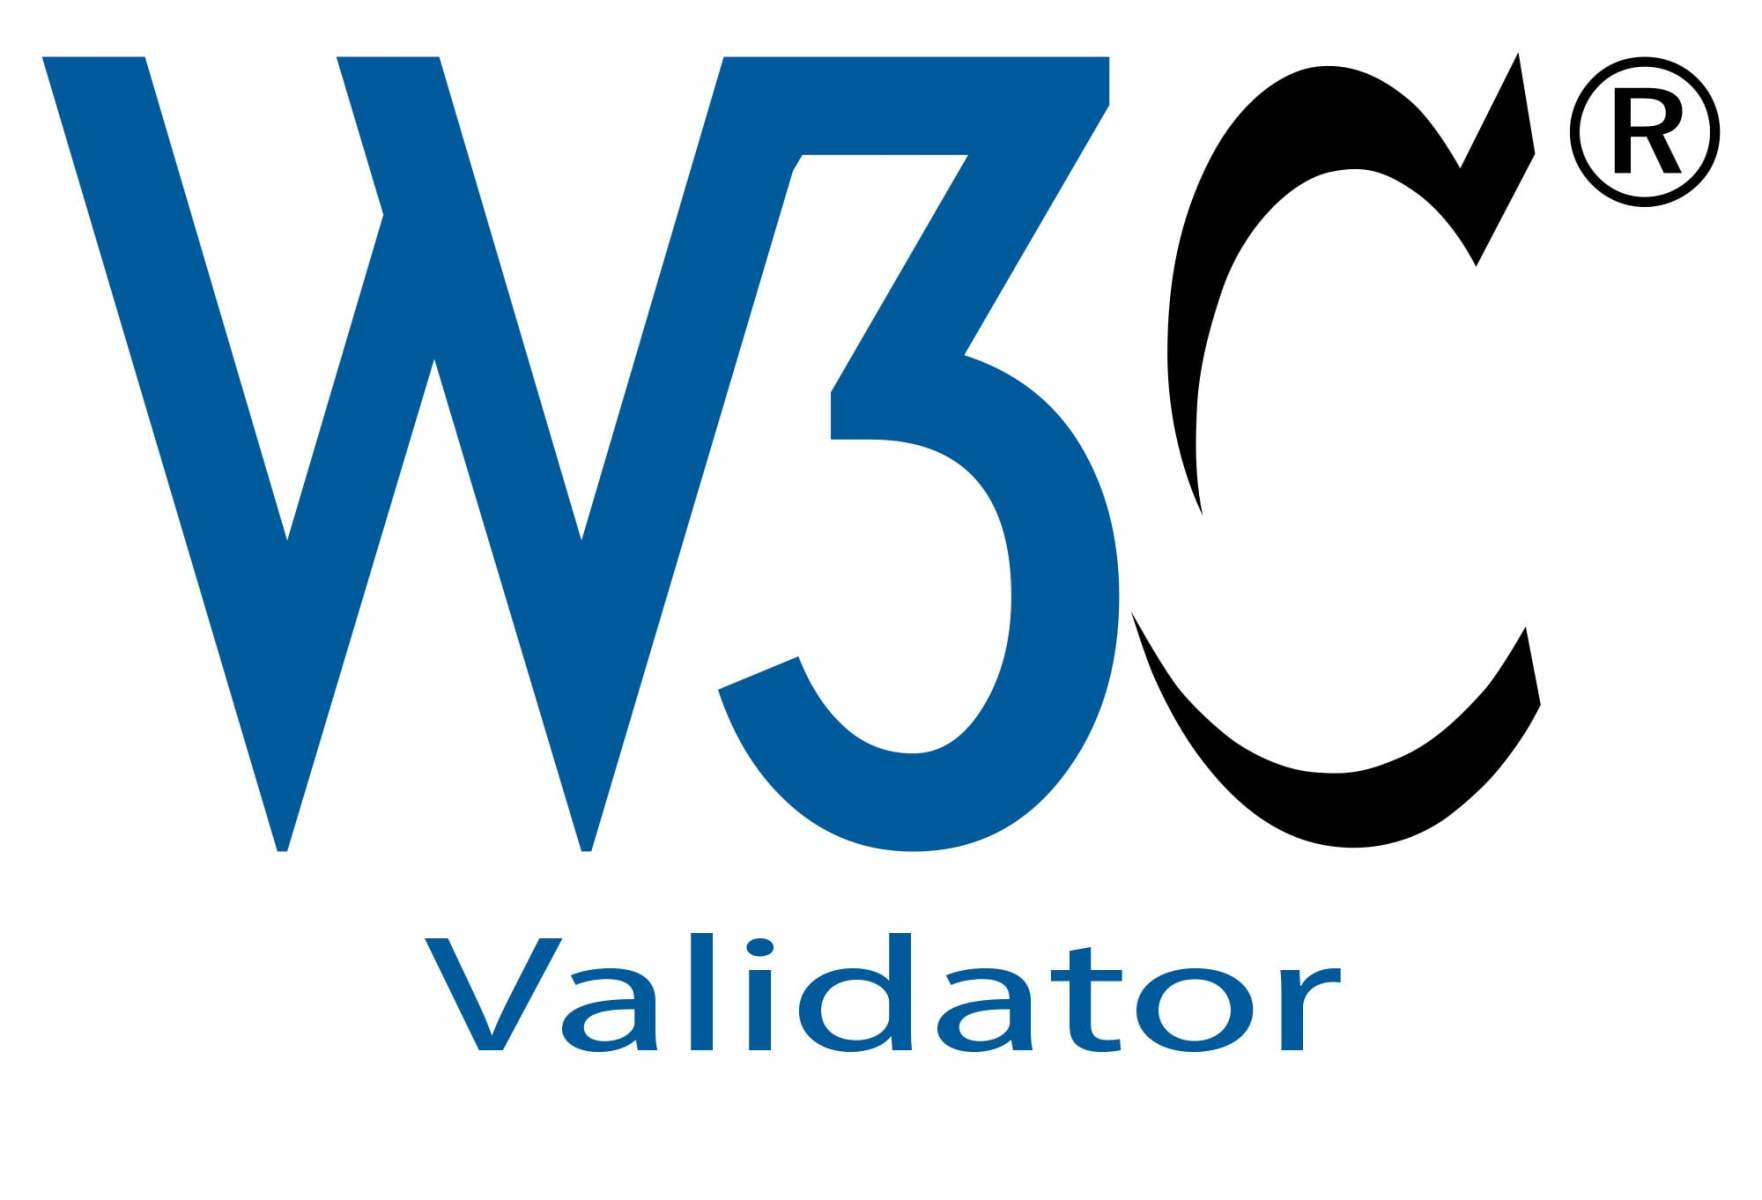 do-w3c-validation-w3c-validation-w3c